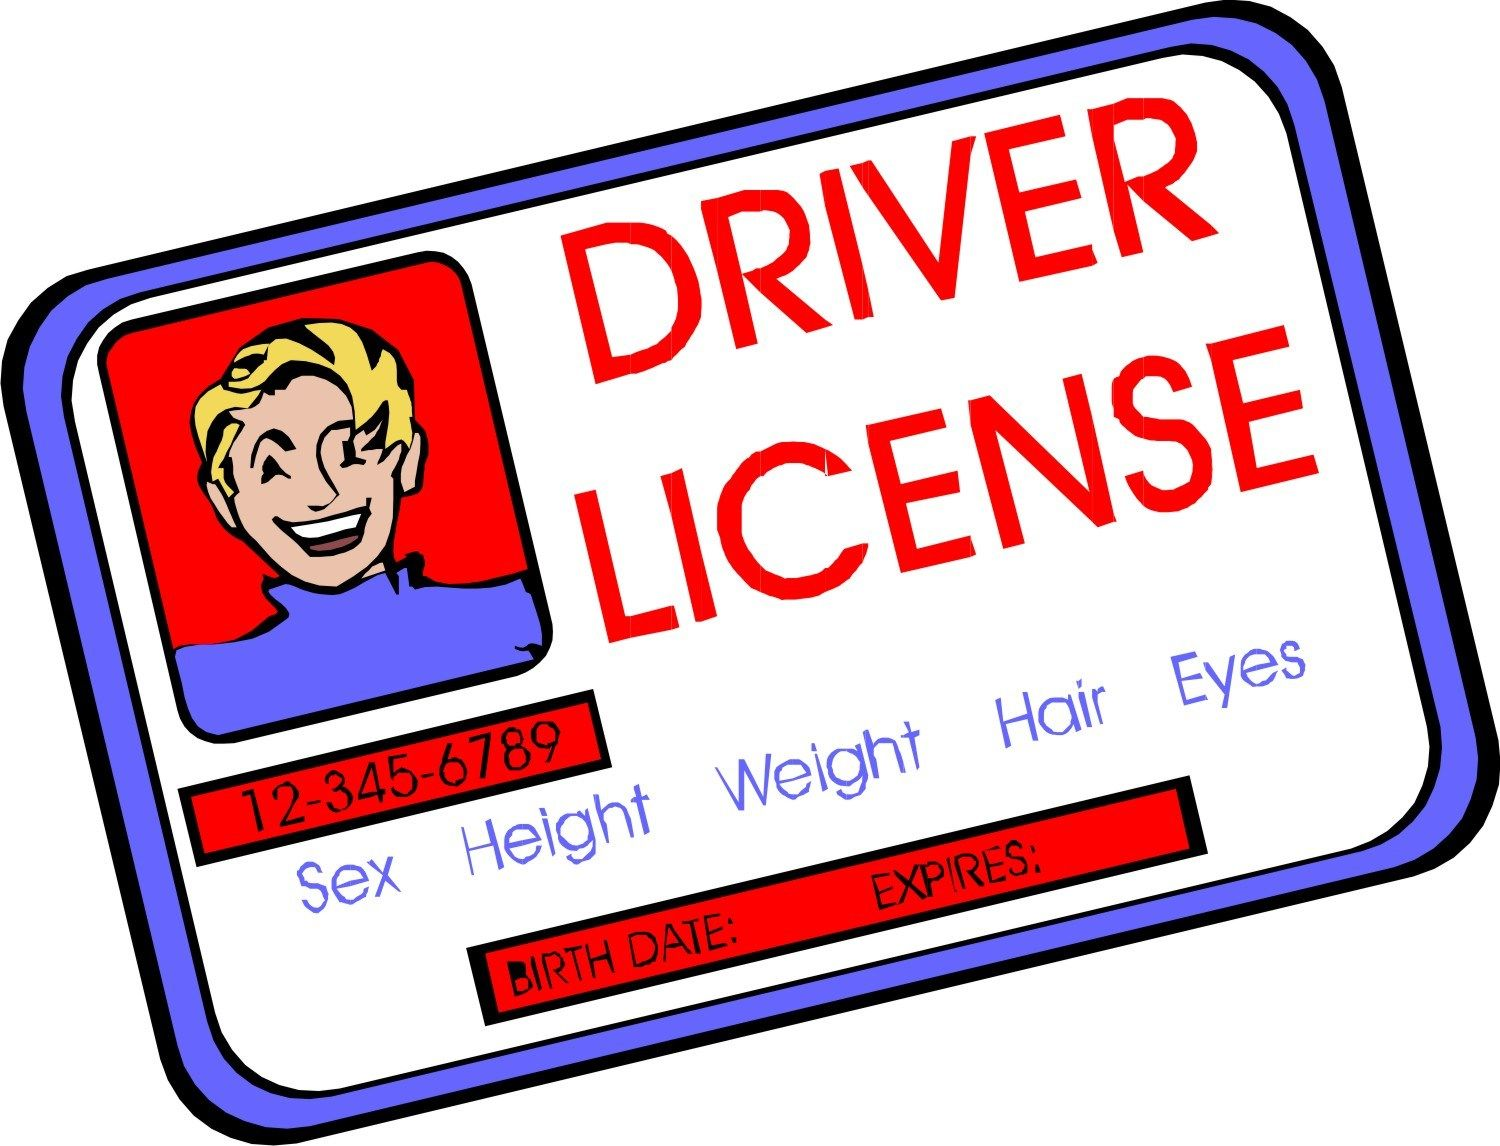 Drivers license clipart driver's license. Pin by sujoy dhar